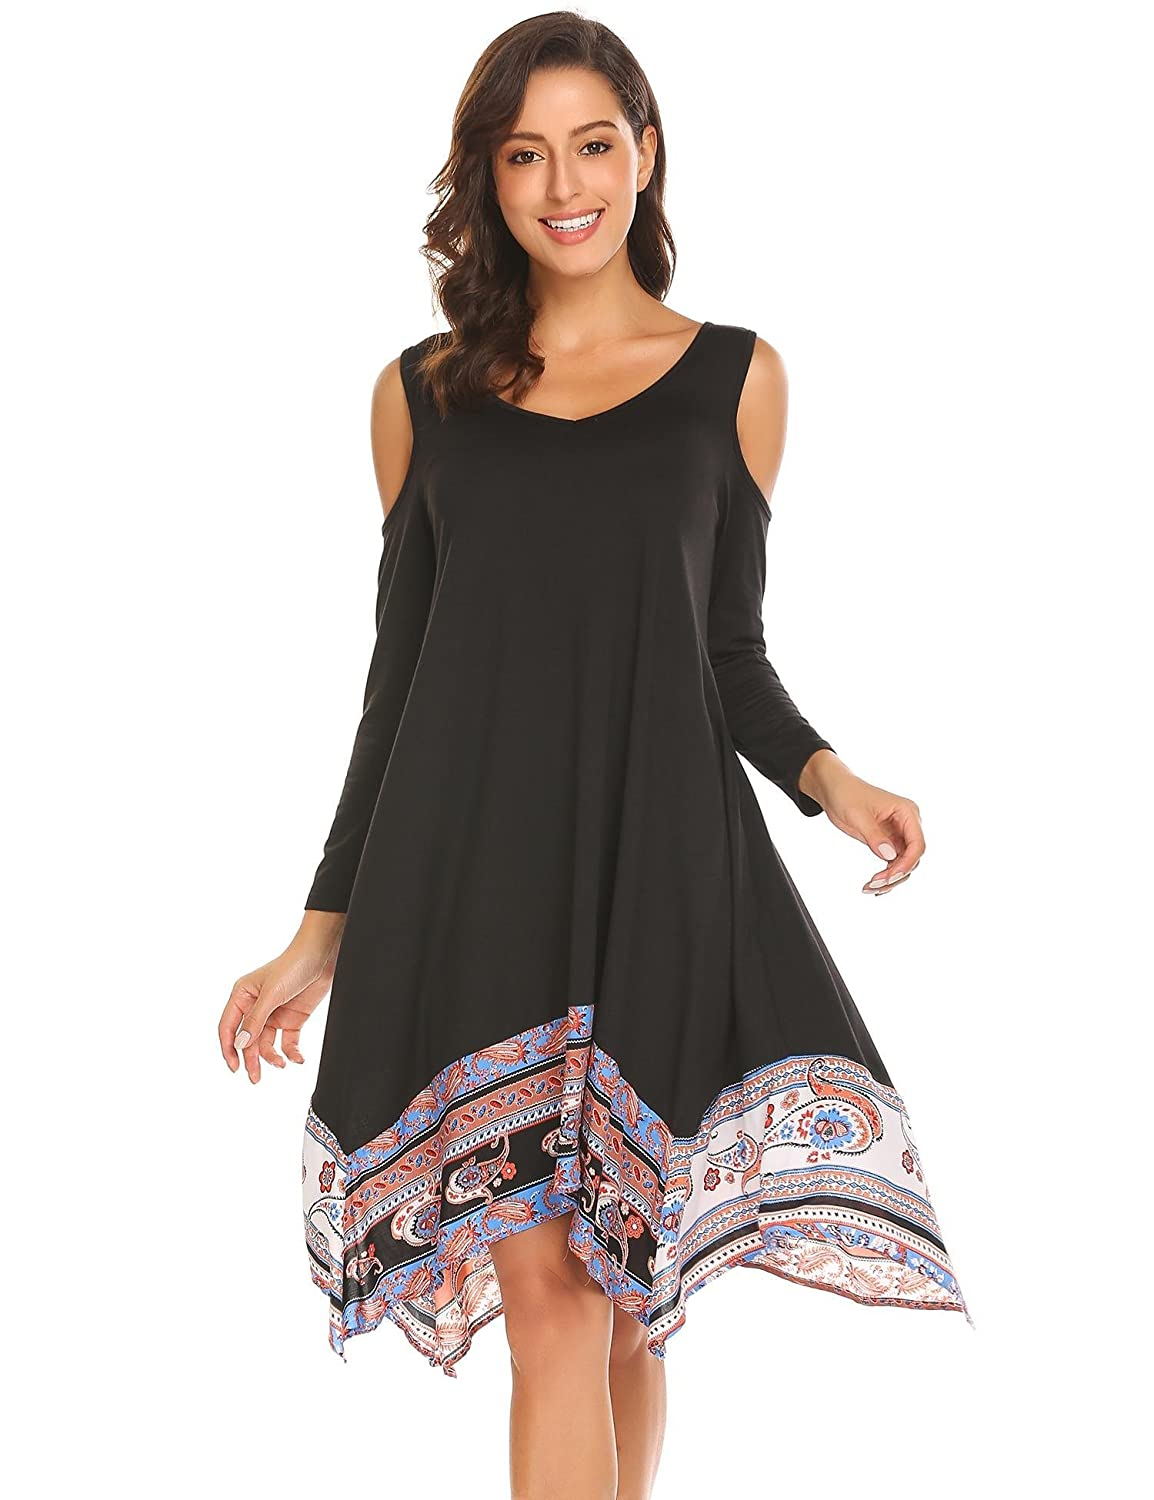 994e2193a9 Top 10 wholesale Boho Cold Shoulder Dress - Chinabrands.com